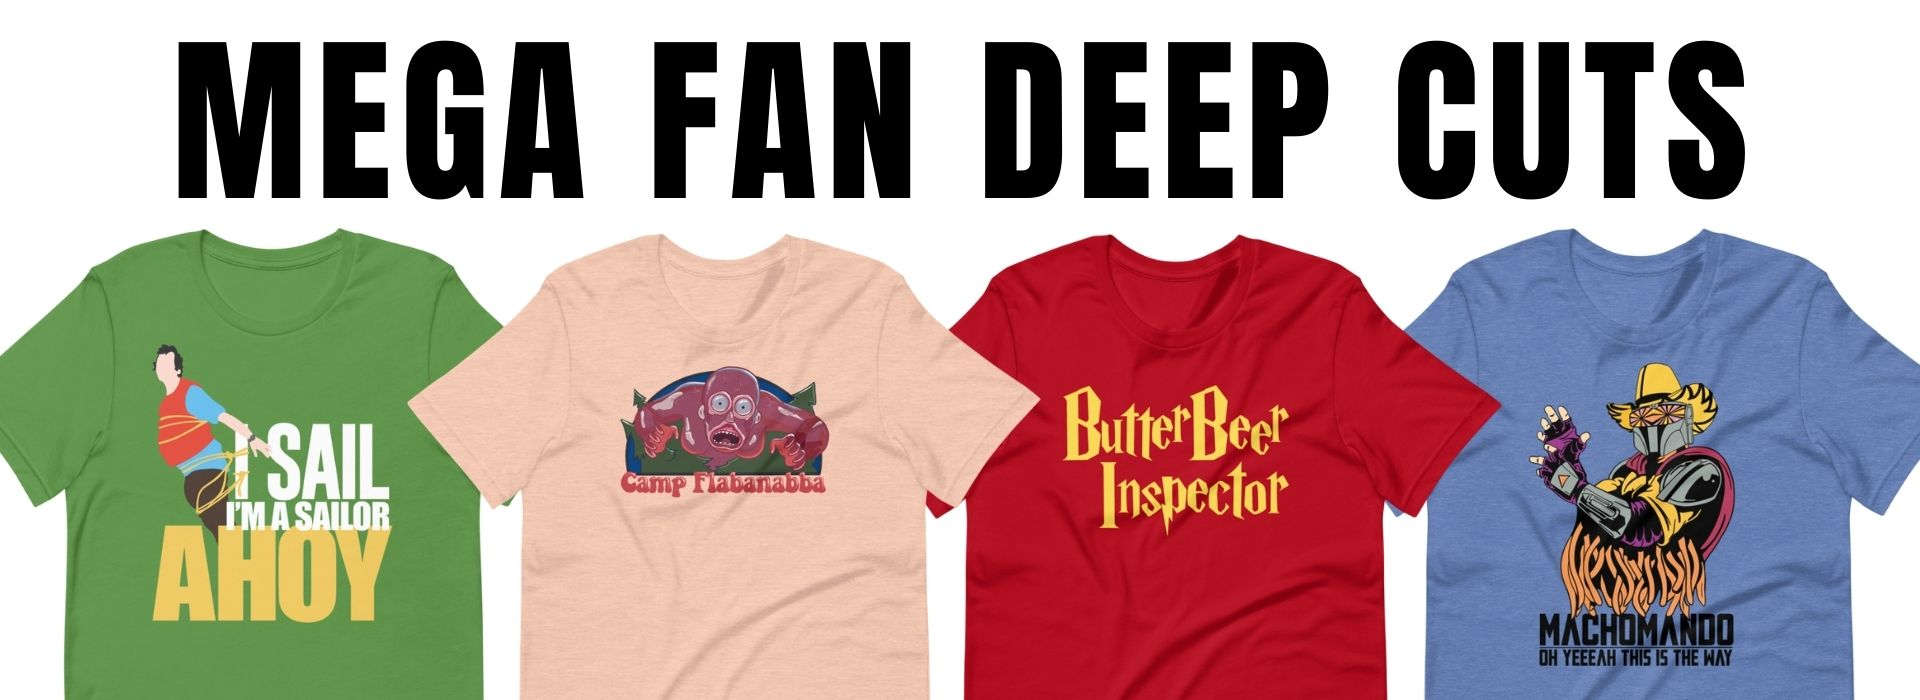 Culture Sub T-Shirt Designs For Fandom Movies Music TV and More